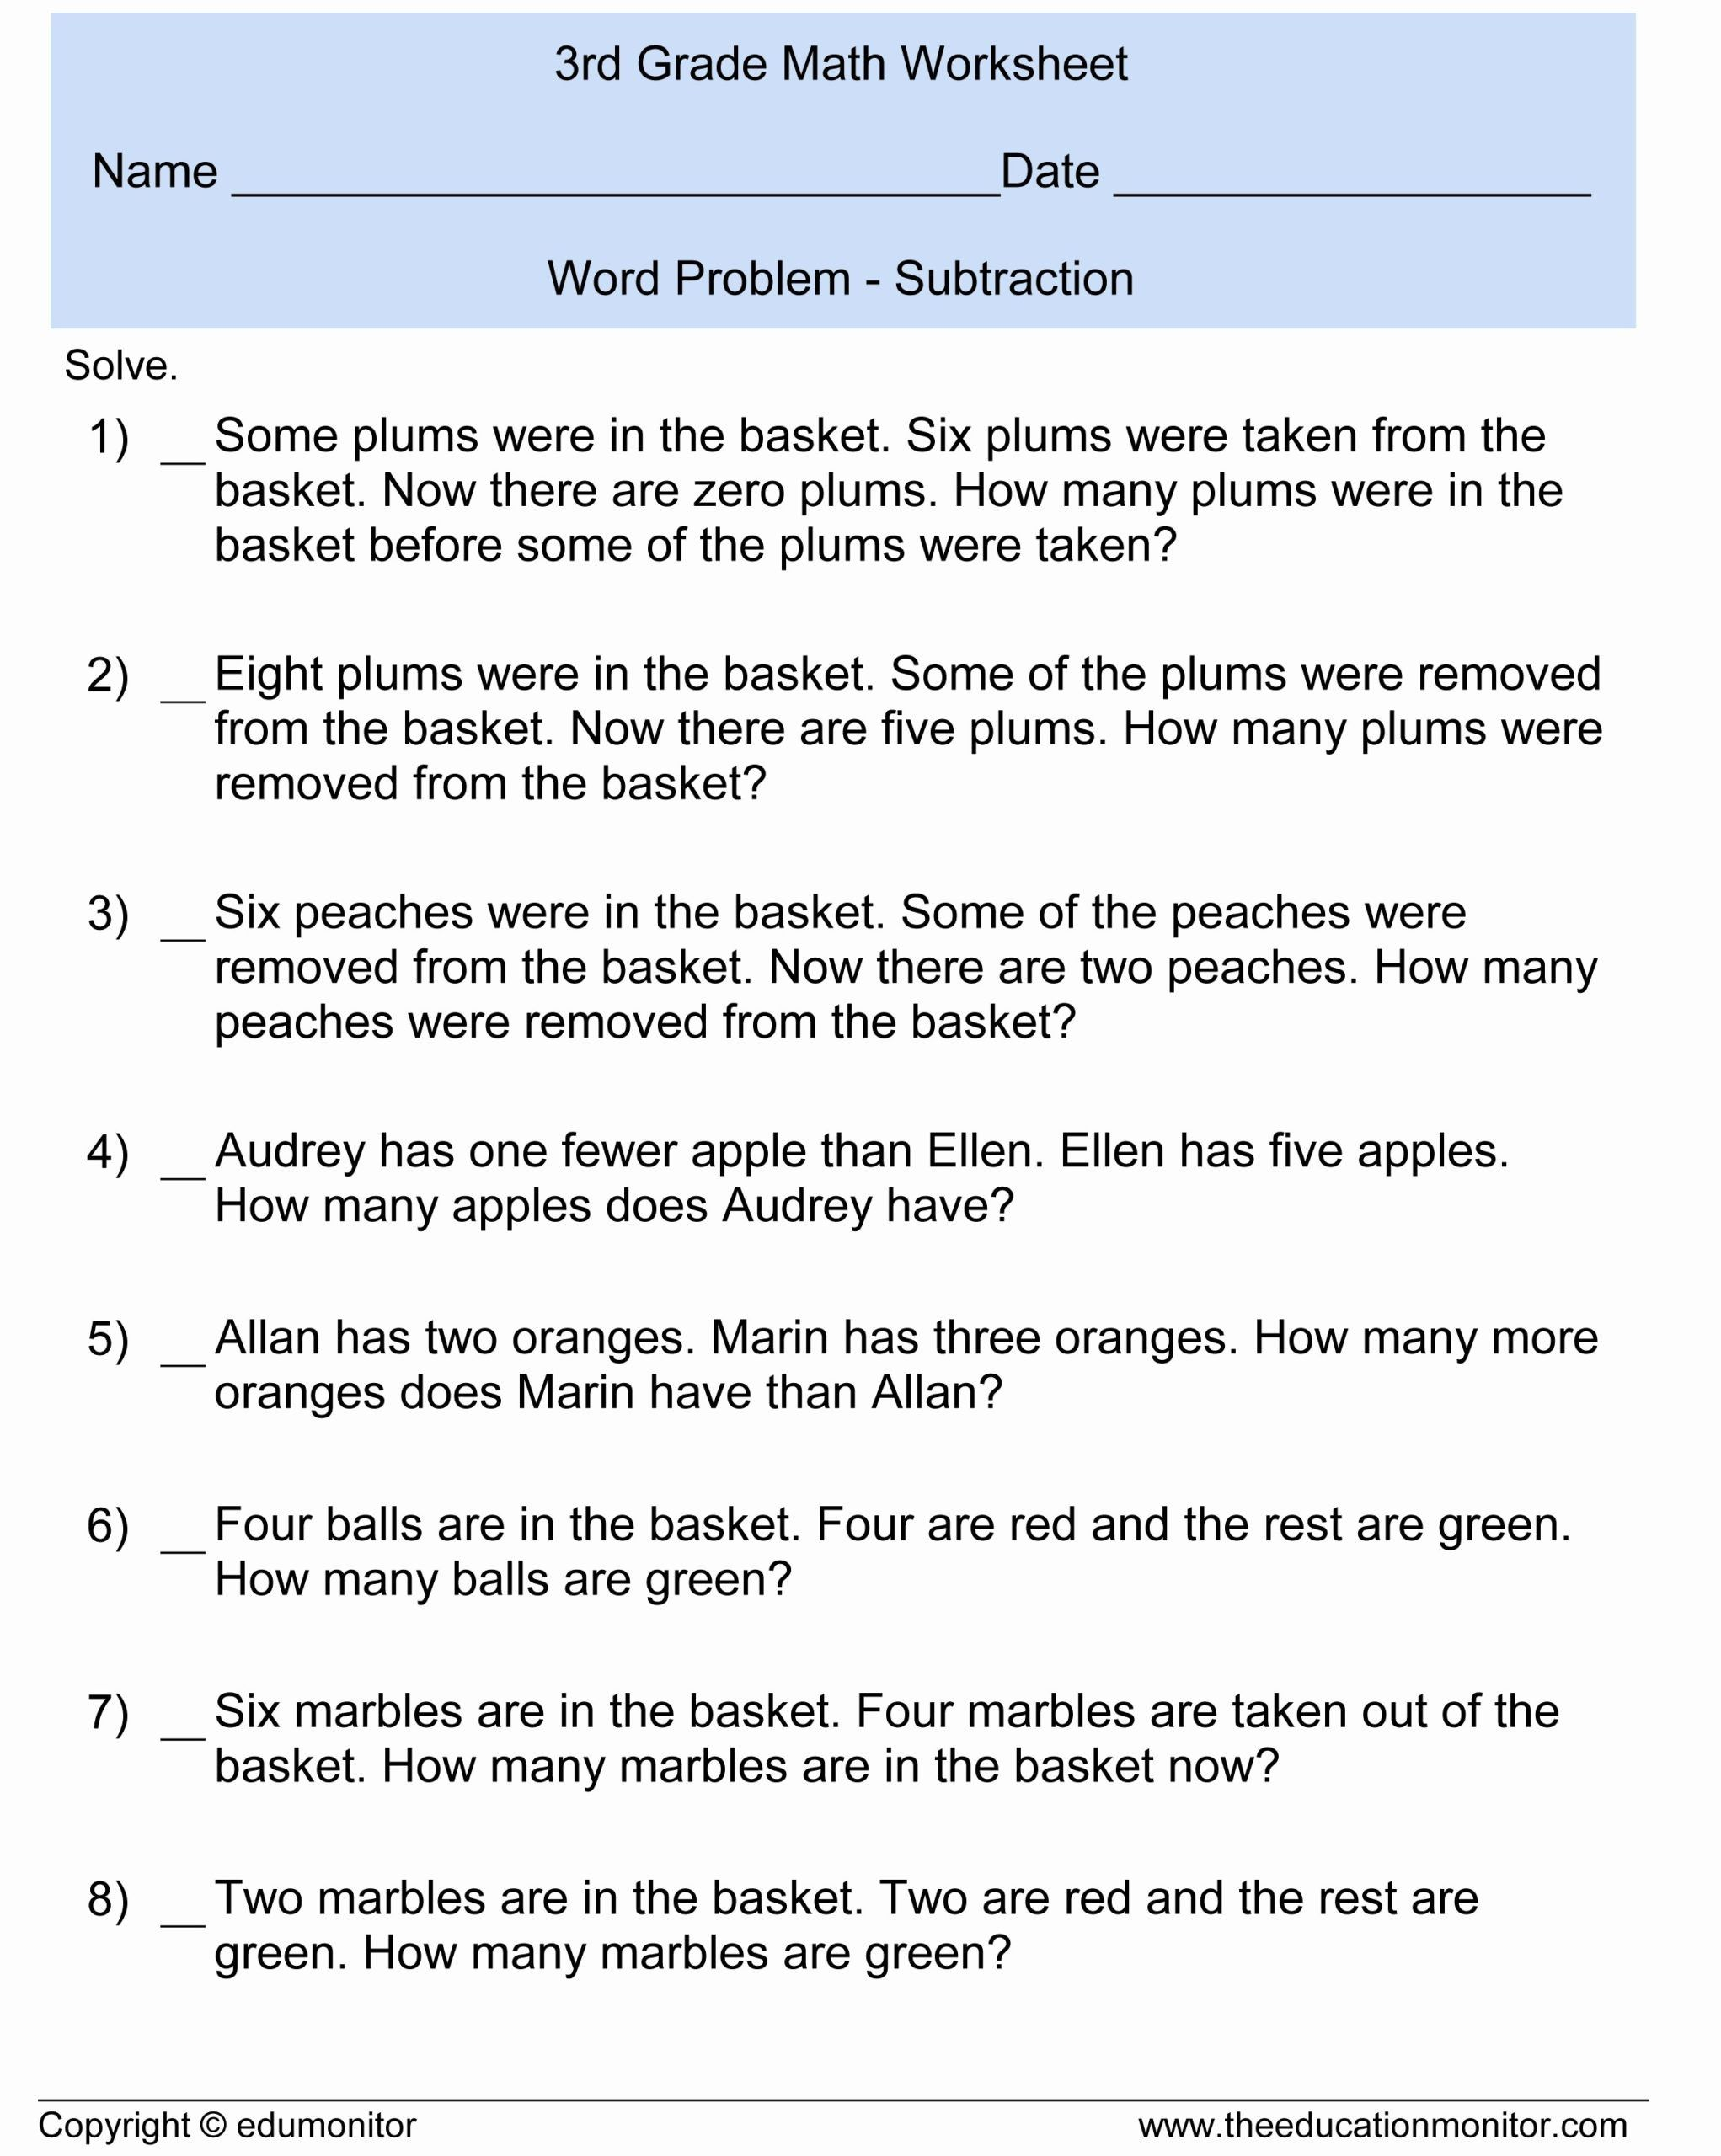 hight resolution of Matrix Word Problems Worksheets   Printable Worksheets and Activities for  Teachers